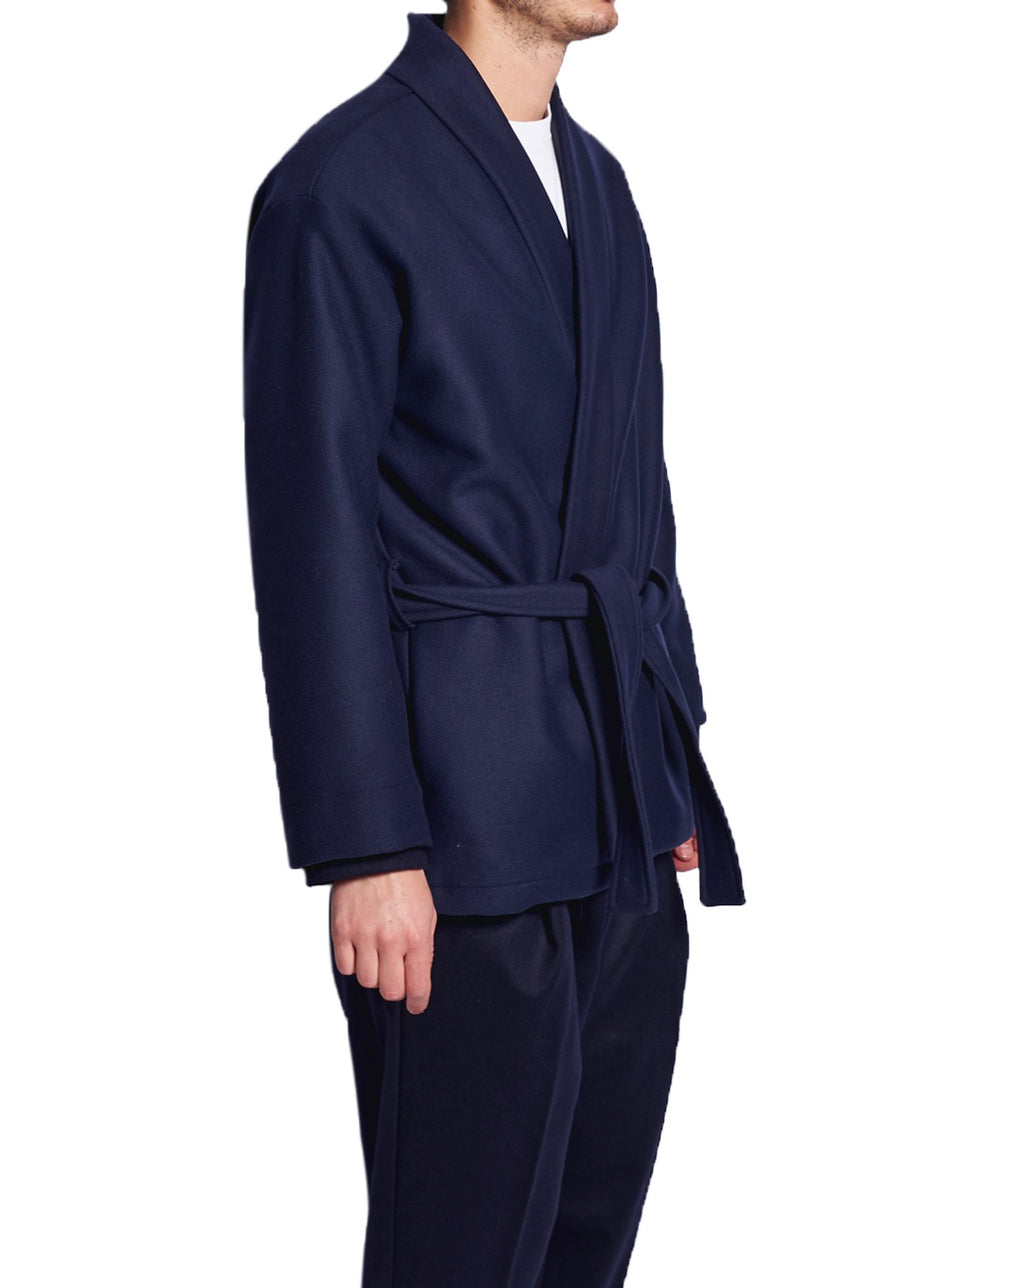 MEN'S KIMO-JACKET NAVY